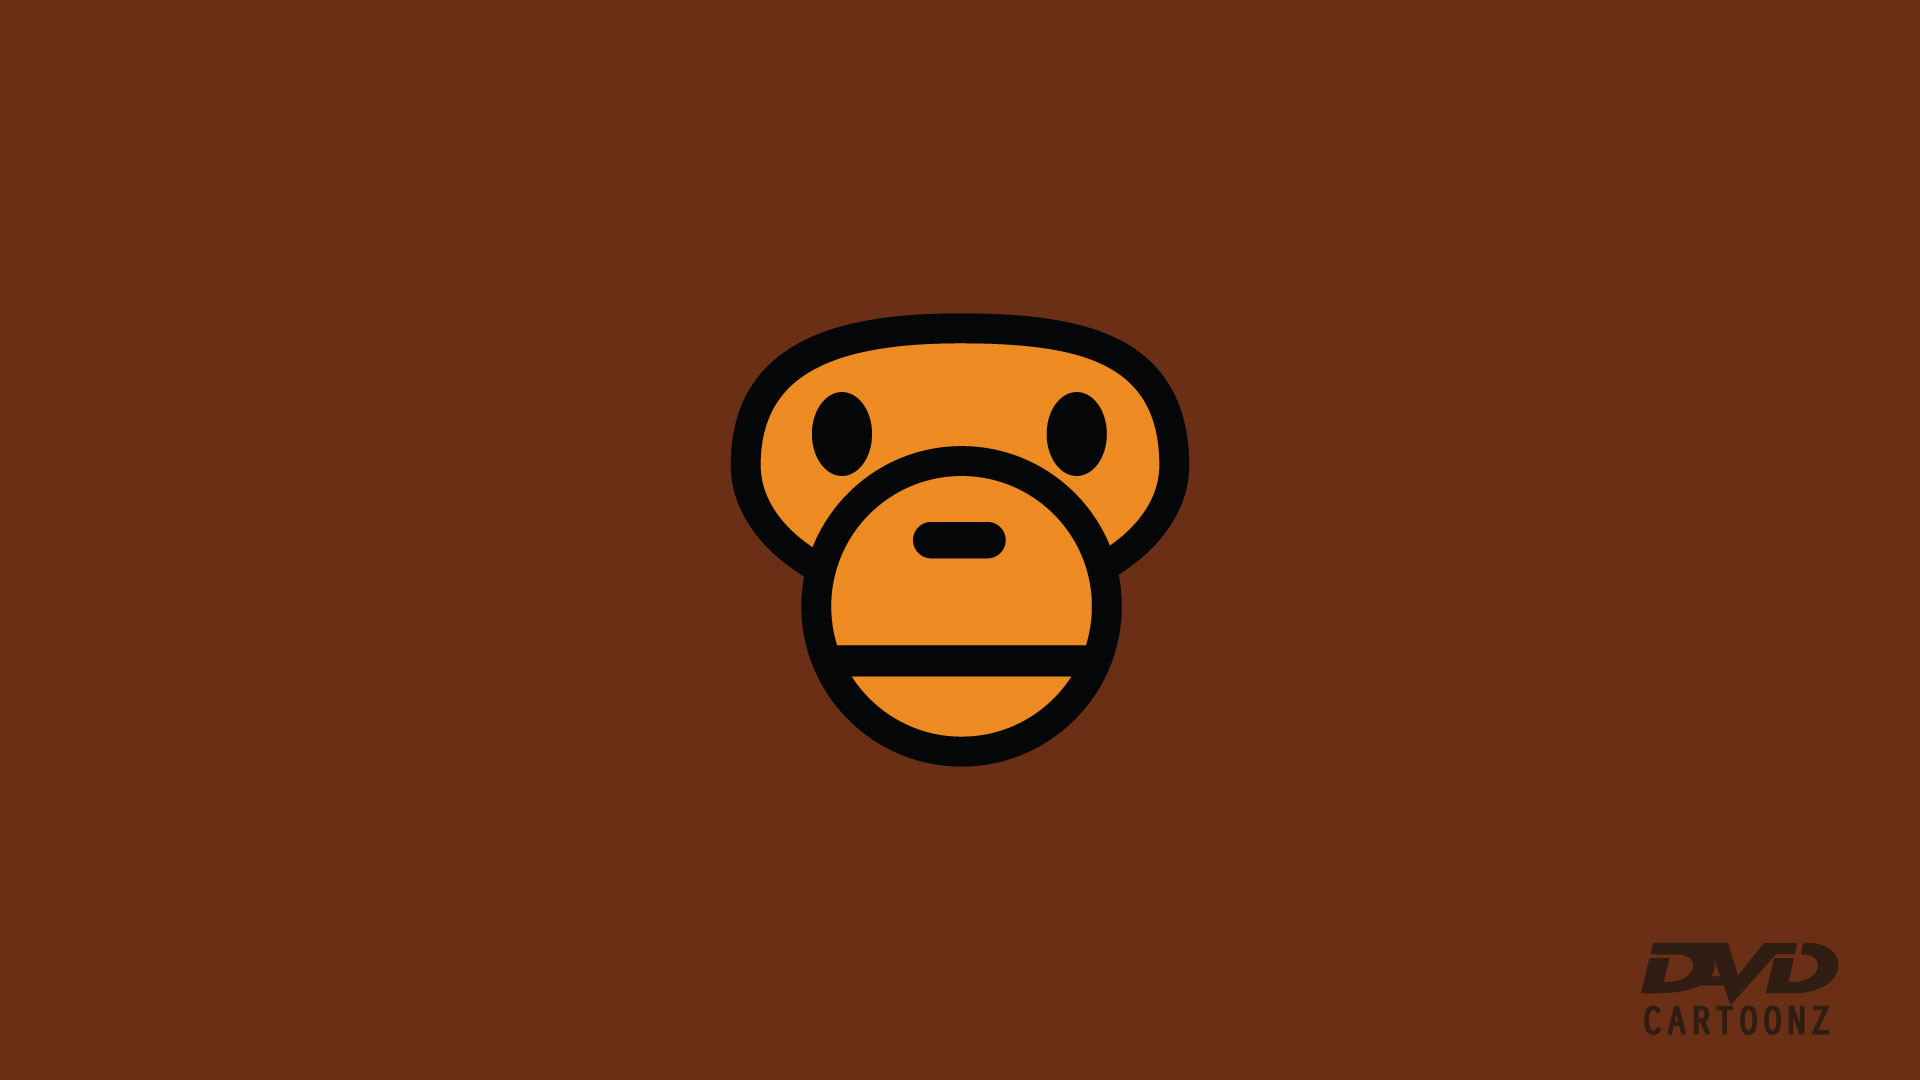 Bape Iphone Wallpaper - Bape Baby Milo Screen Saver - HD Wallpaper